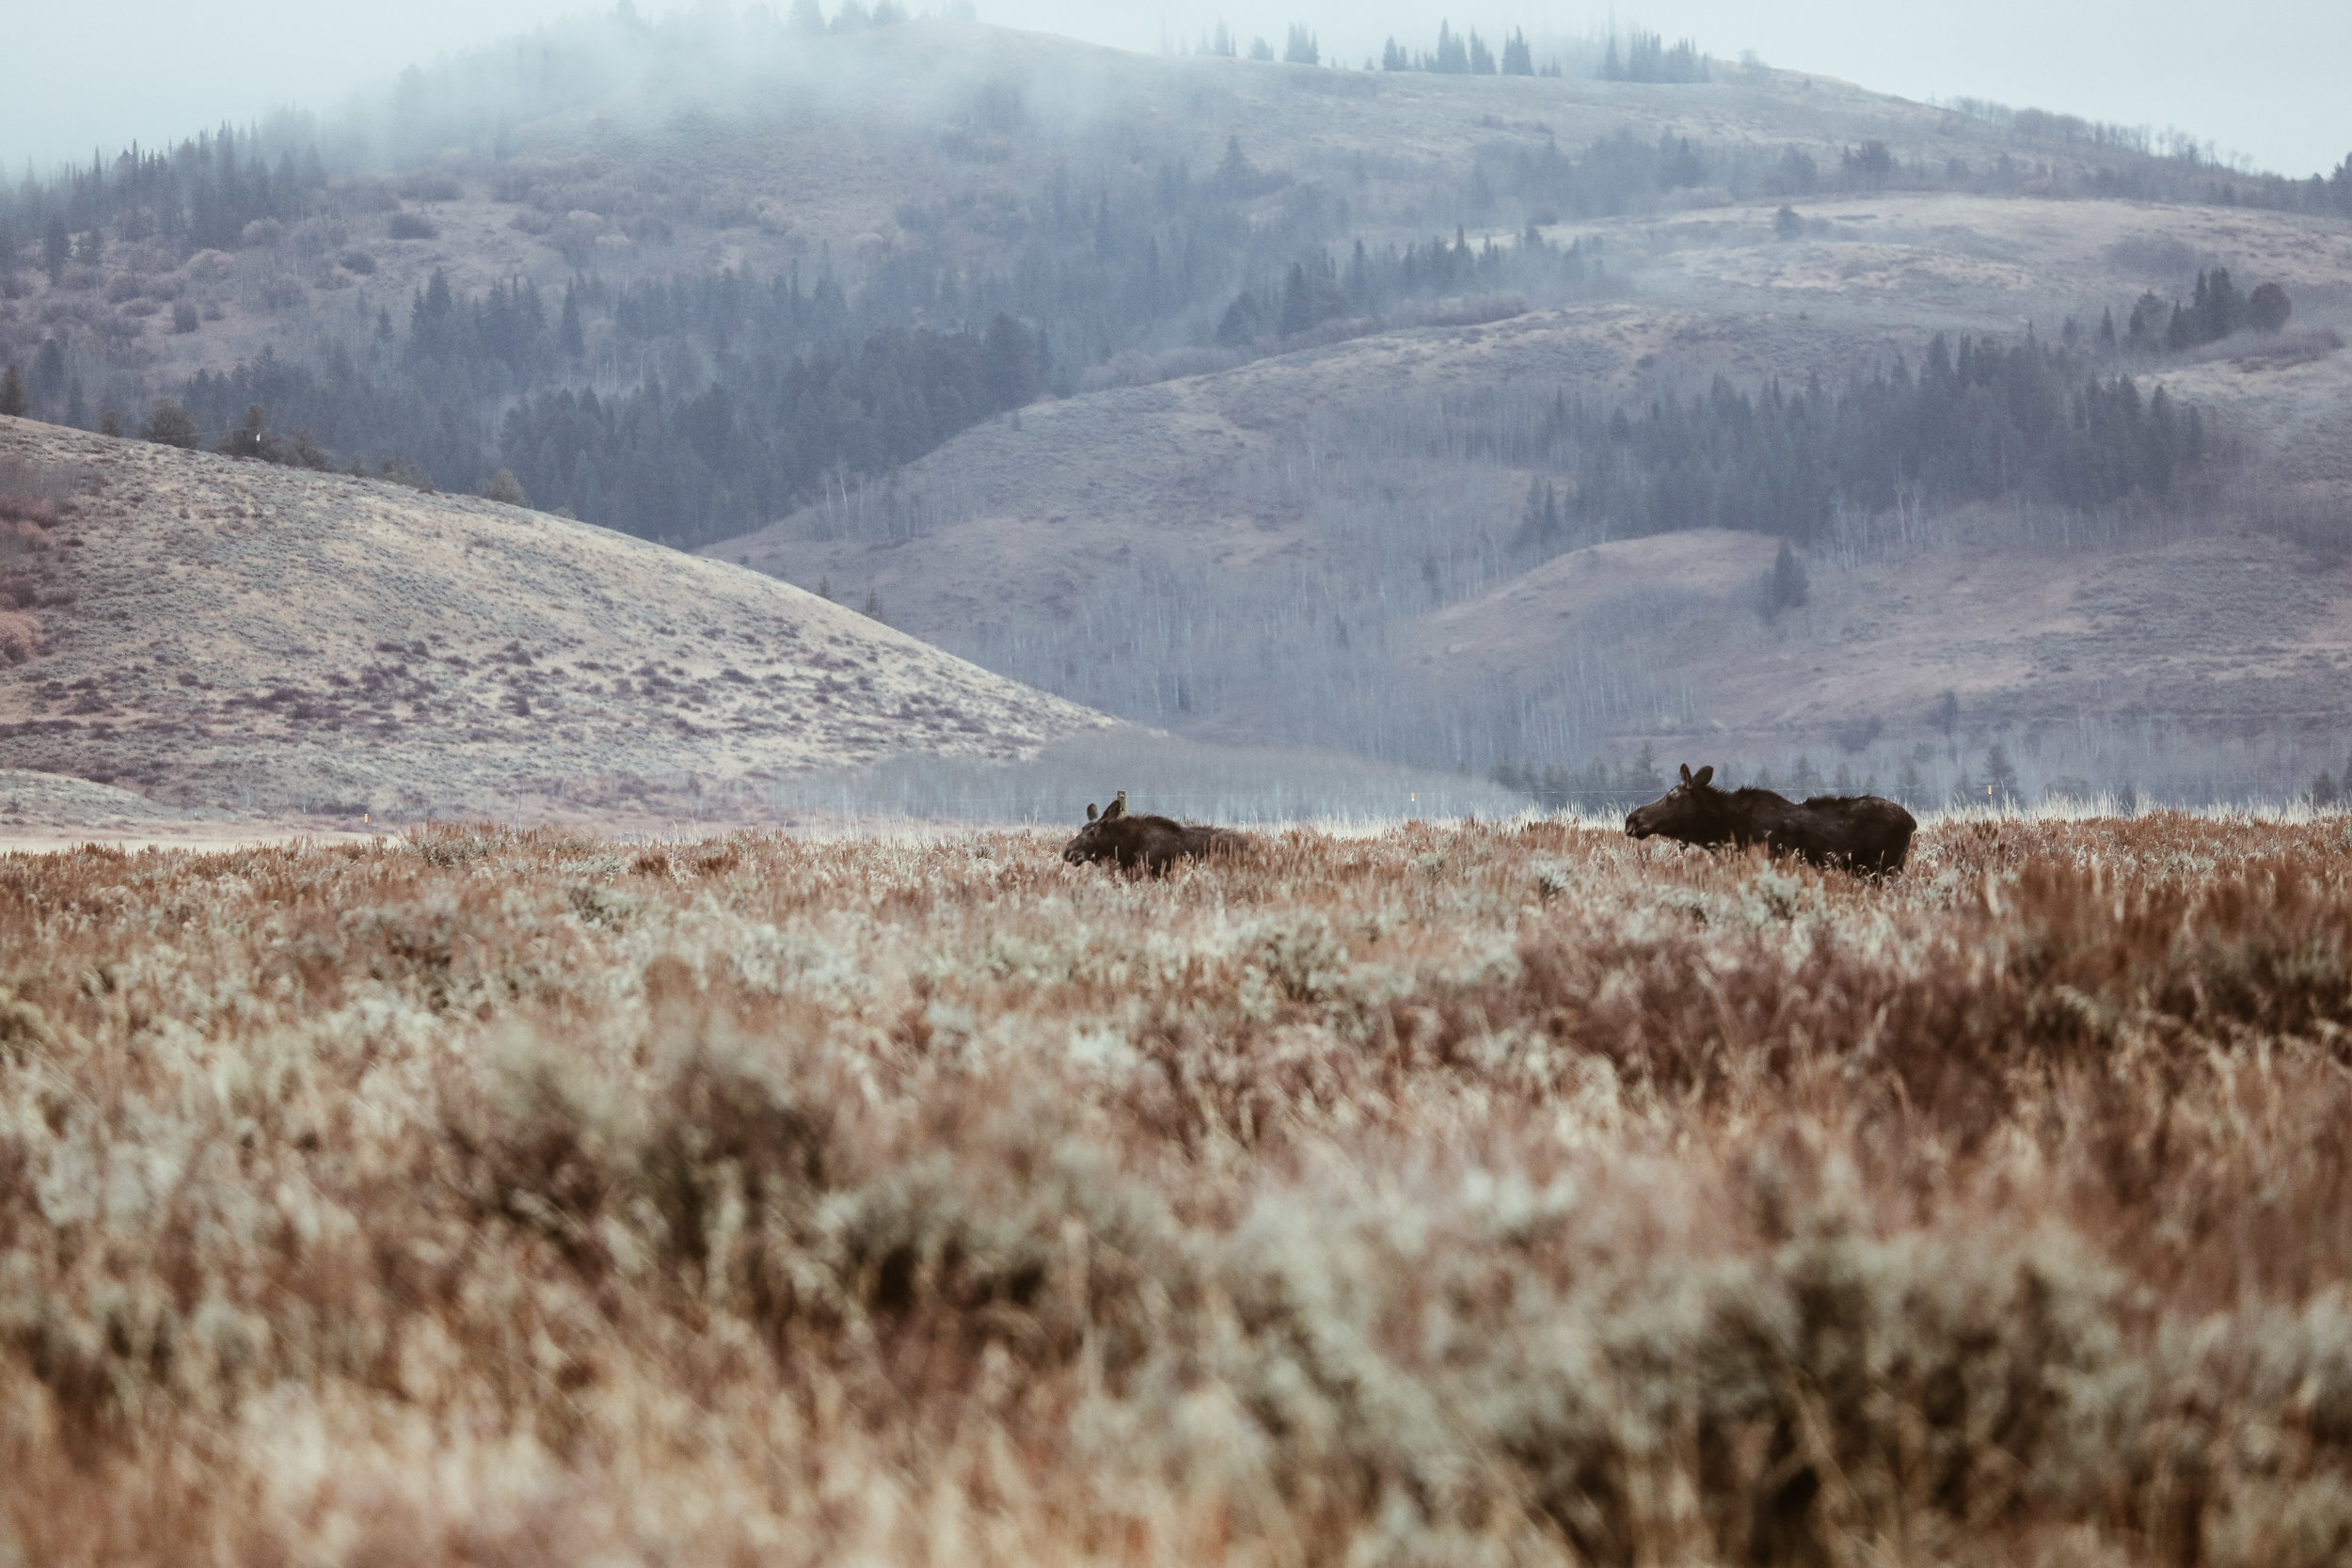 A baby moose + mama moose spotted in the field while on our Jackson Hole Wildlife Safari